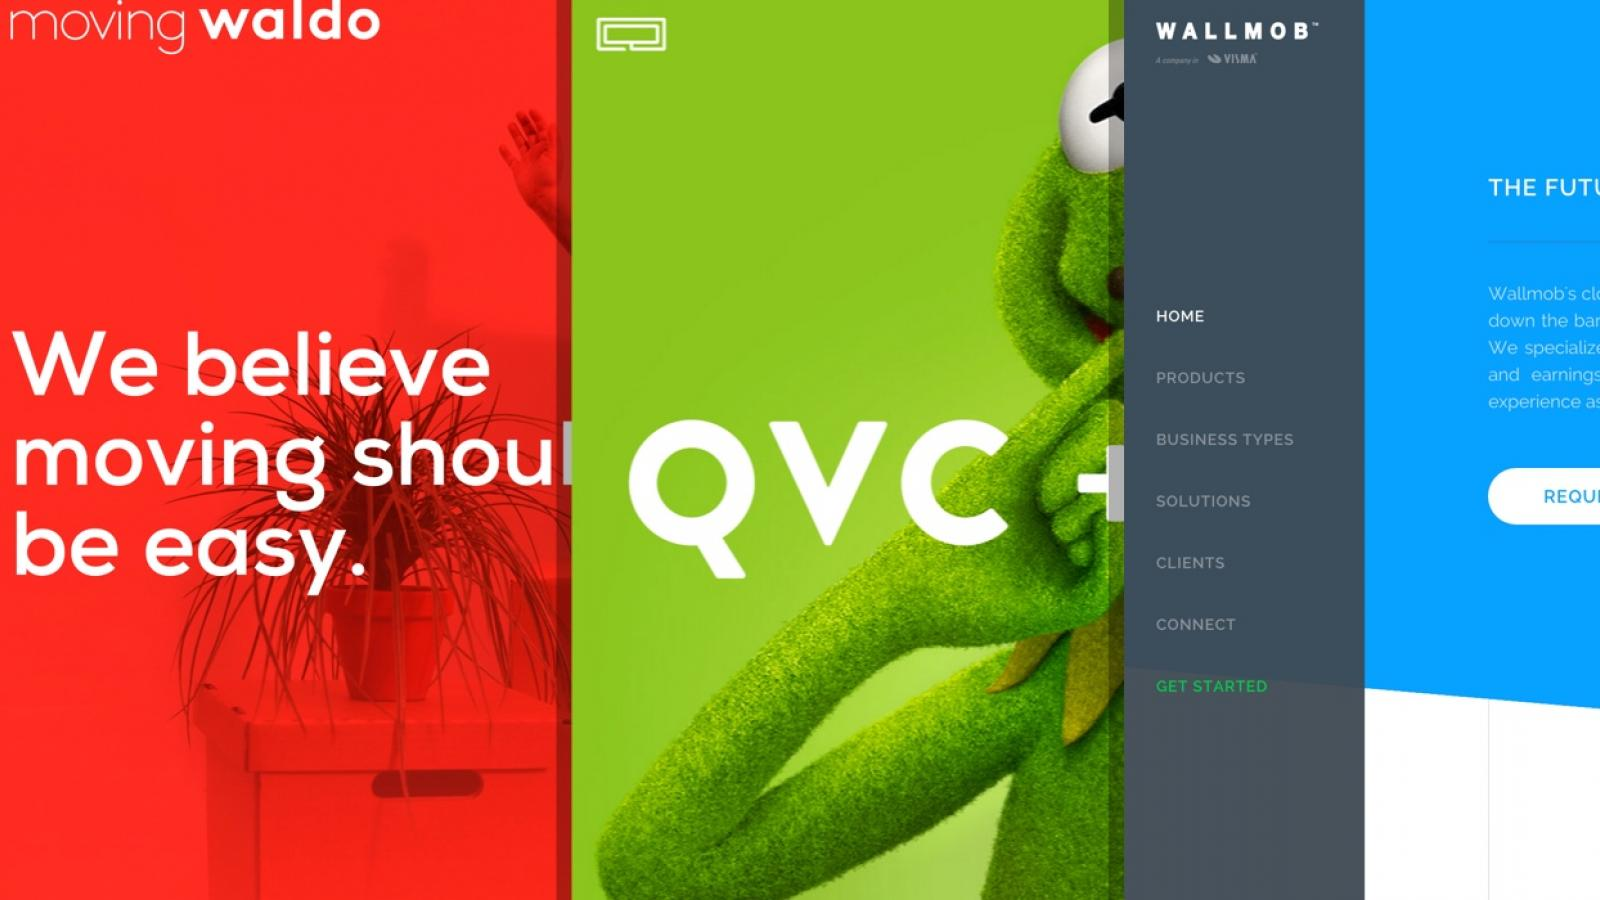 Sites of the Week: Big Omaha, Plaid, Moving Waldo and more